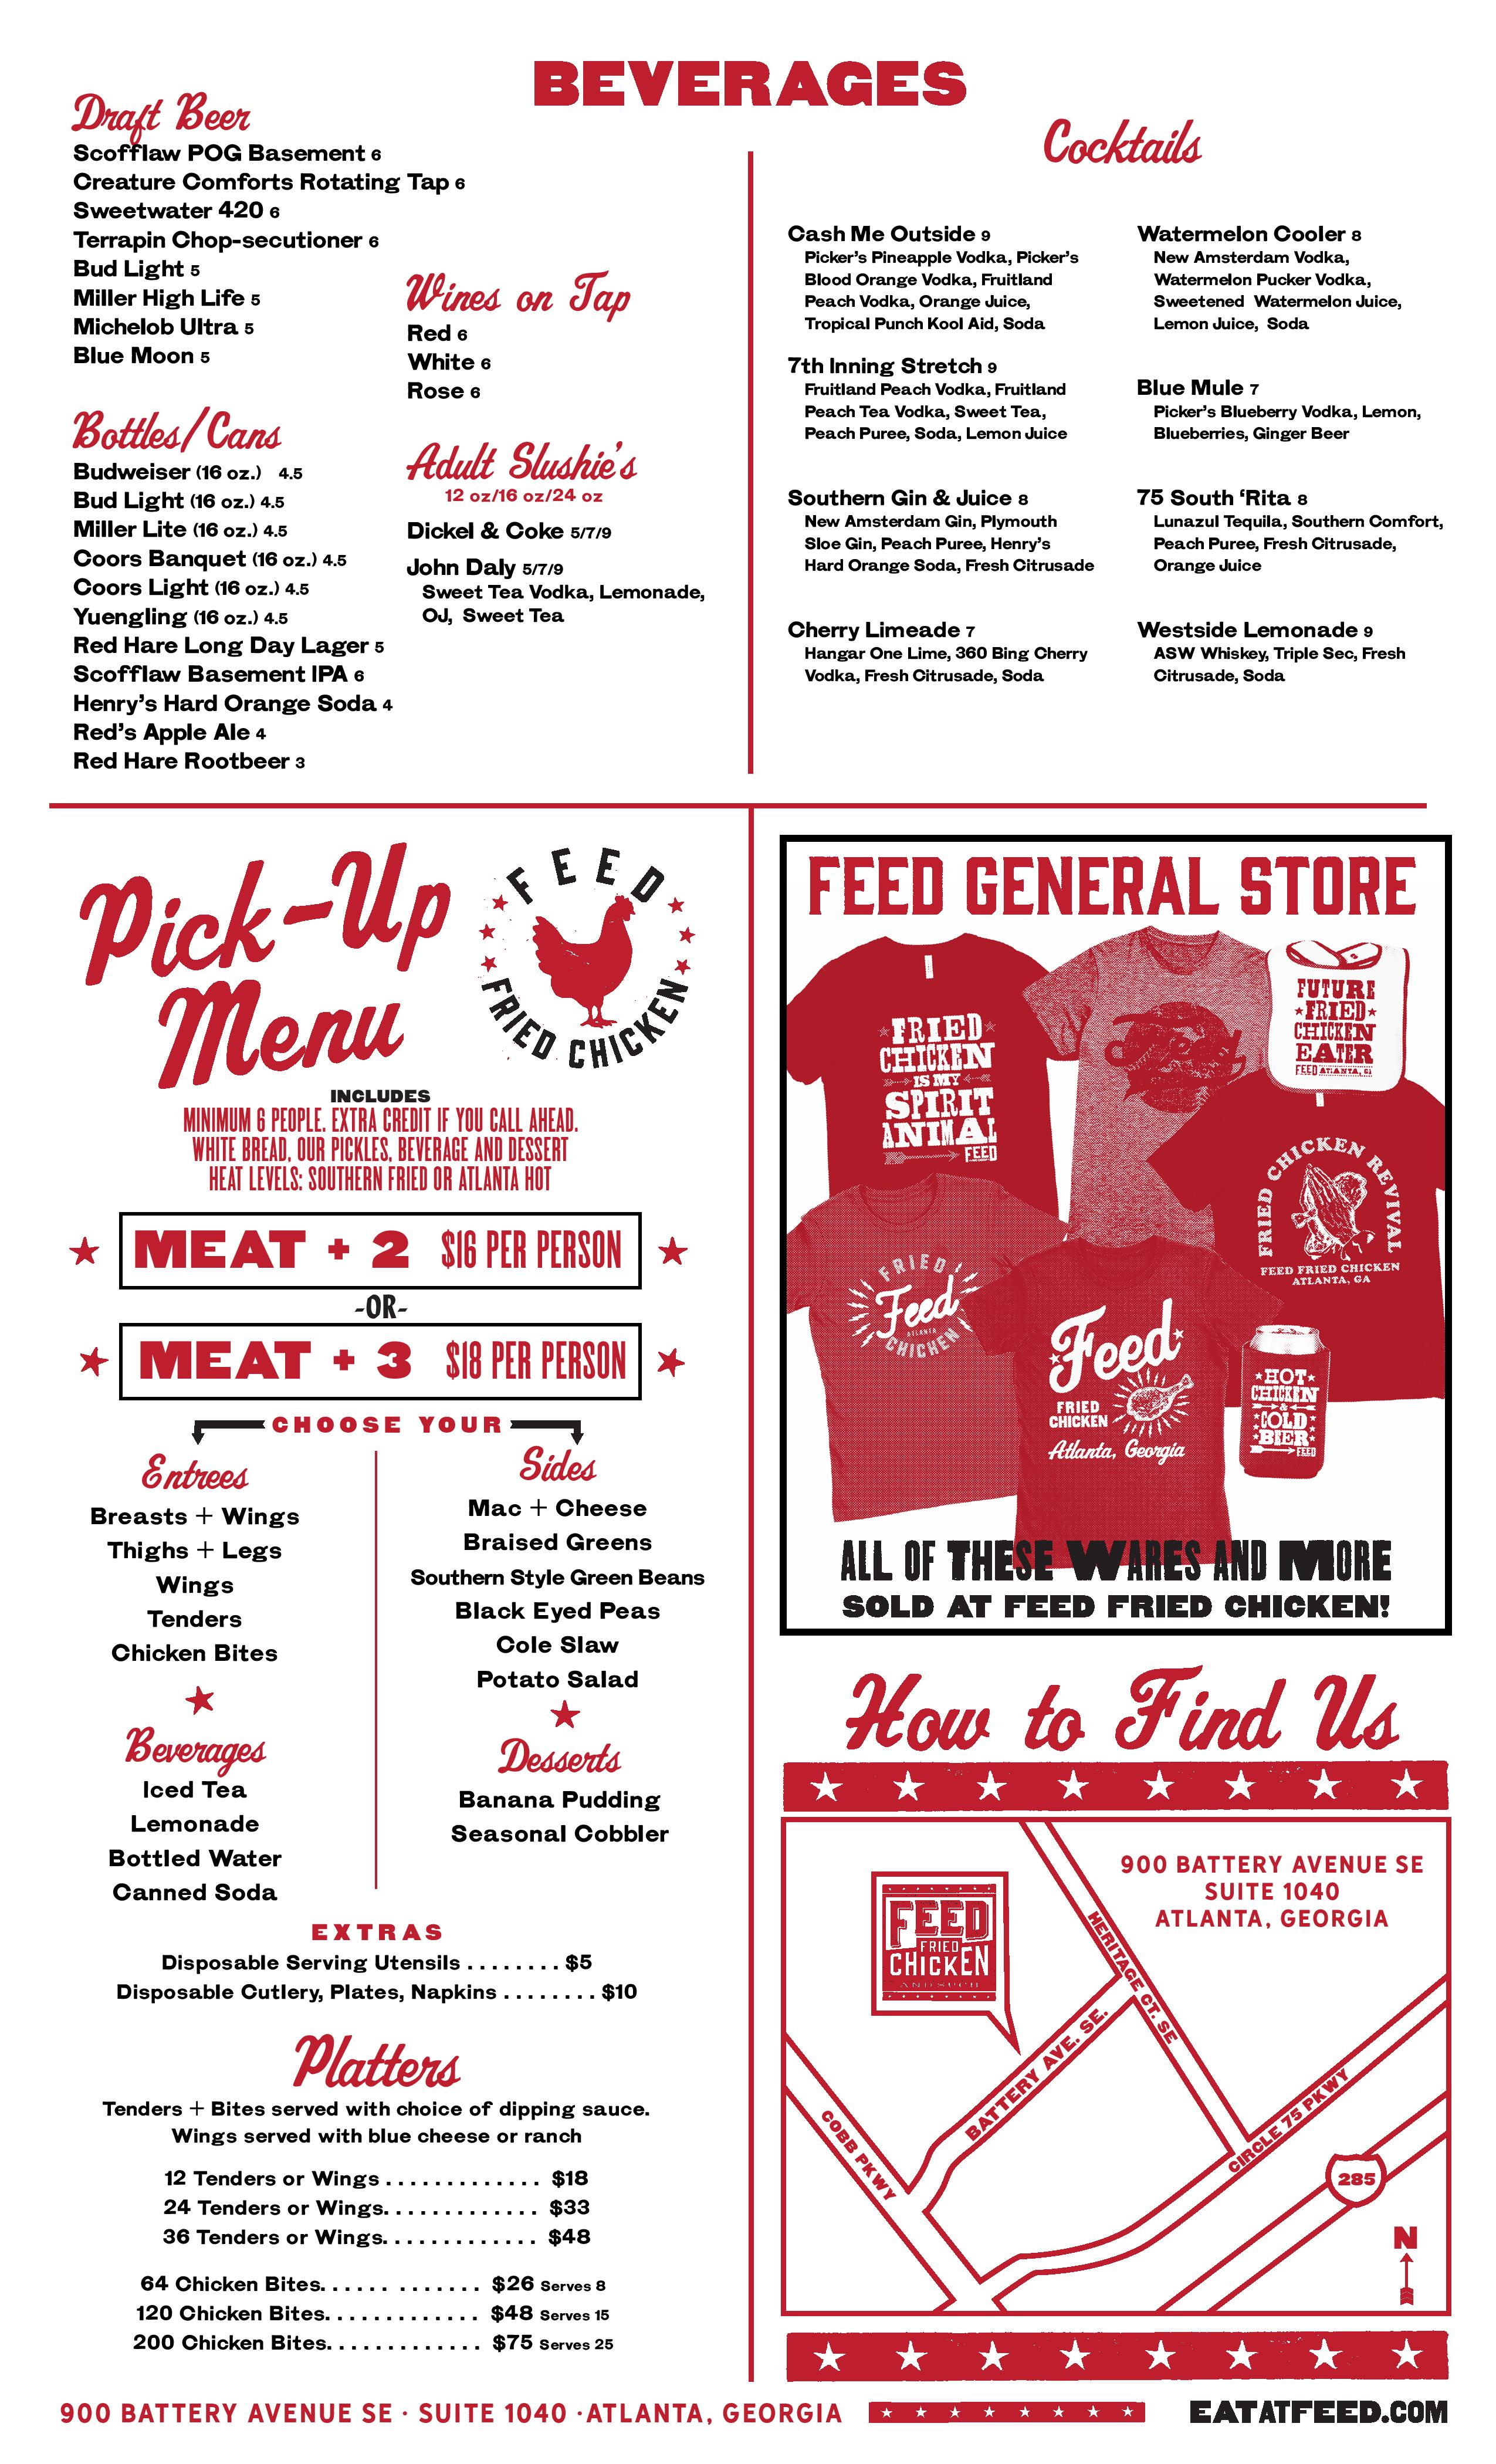 Feed Fried Chicken Is Open at The Battery Heres the Menu Eater – Menu